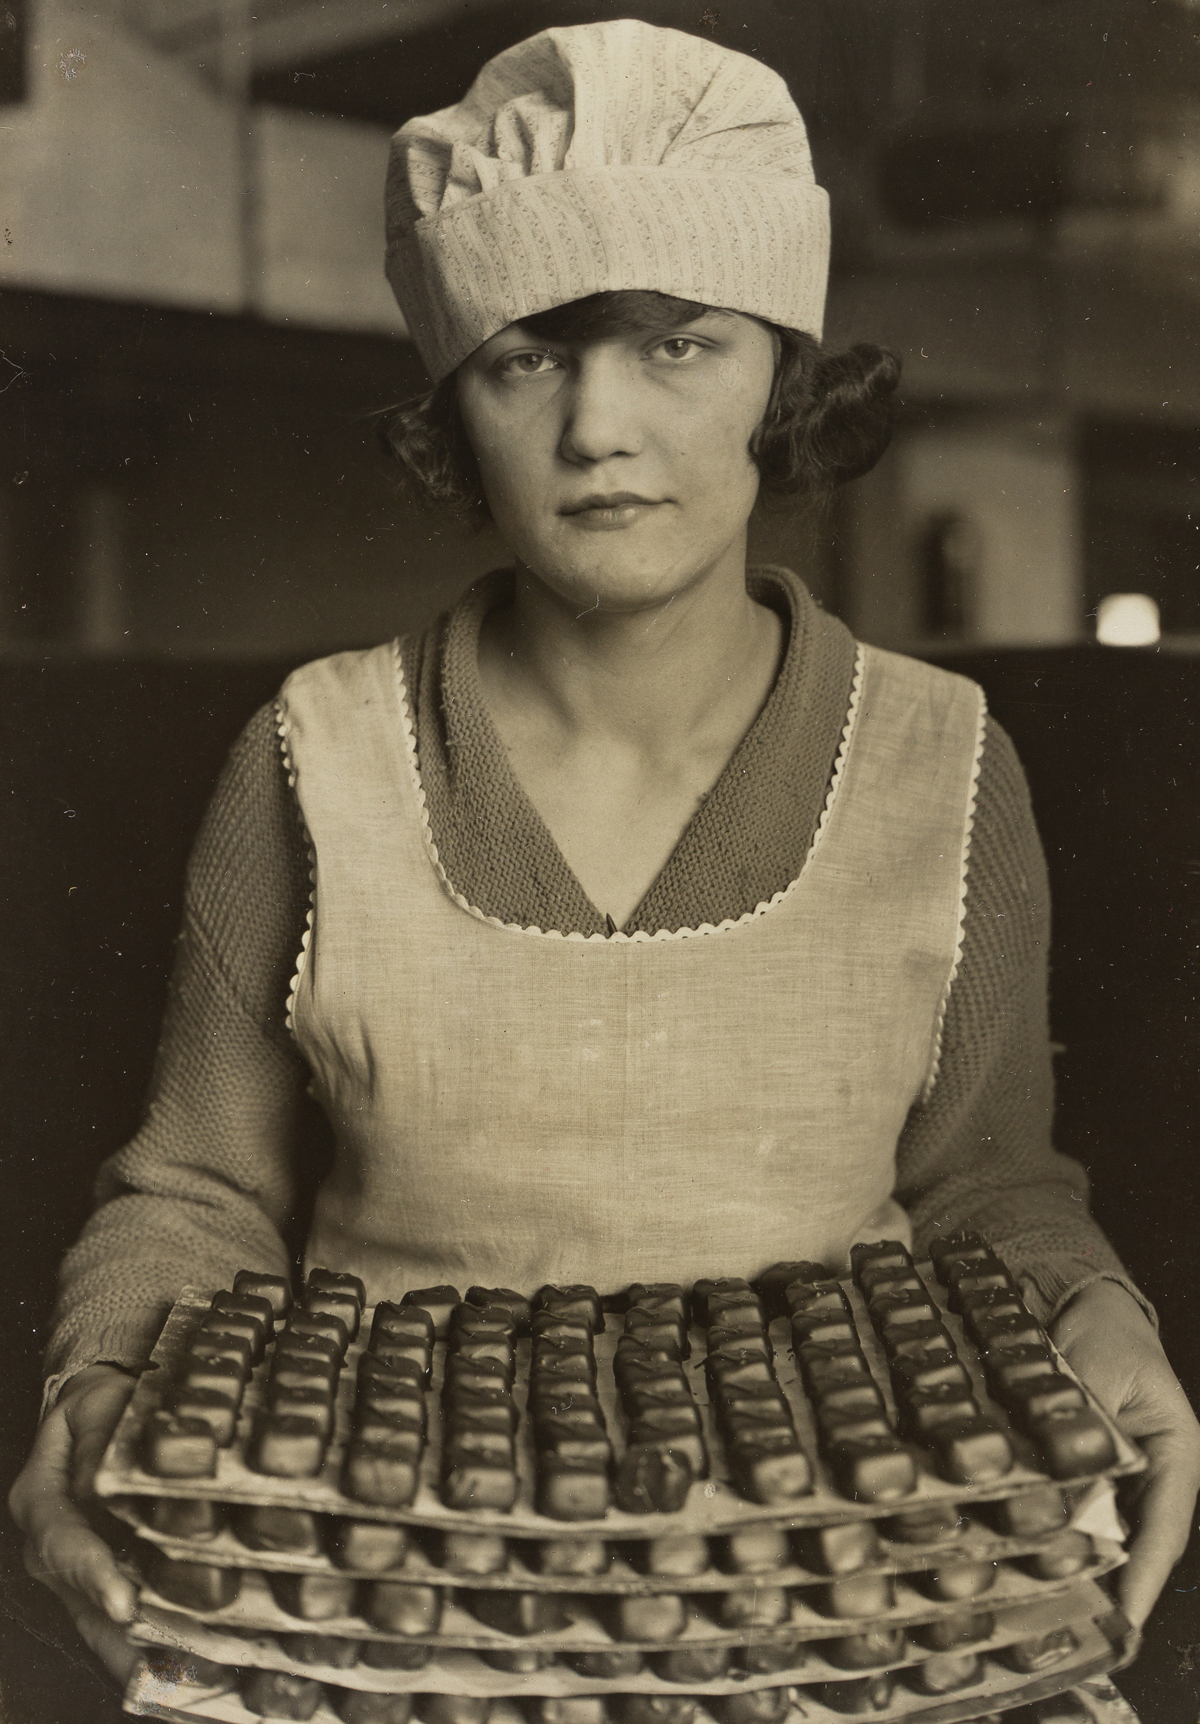 LEWIS W. HINE (1874-1940) Candy Maker, New York City.